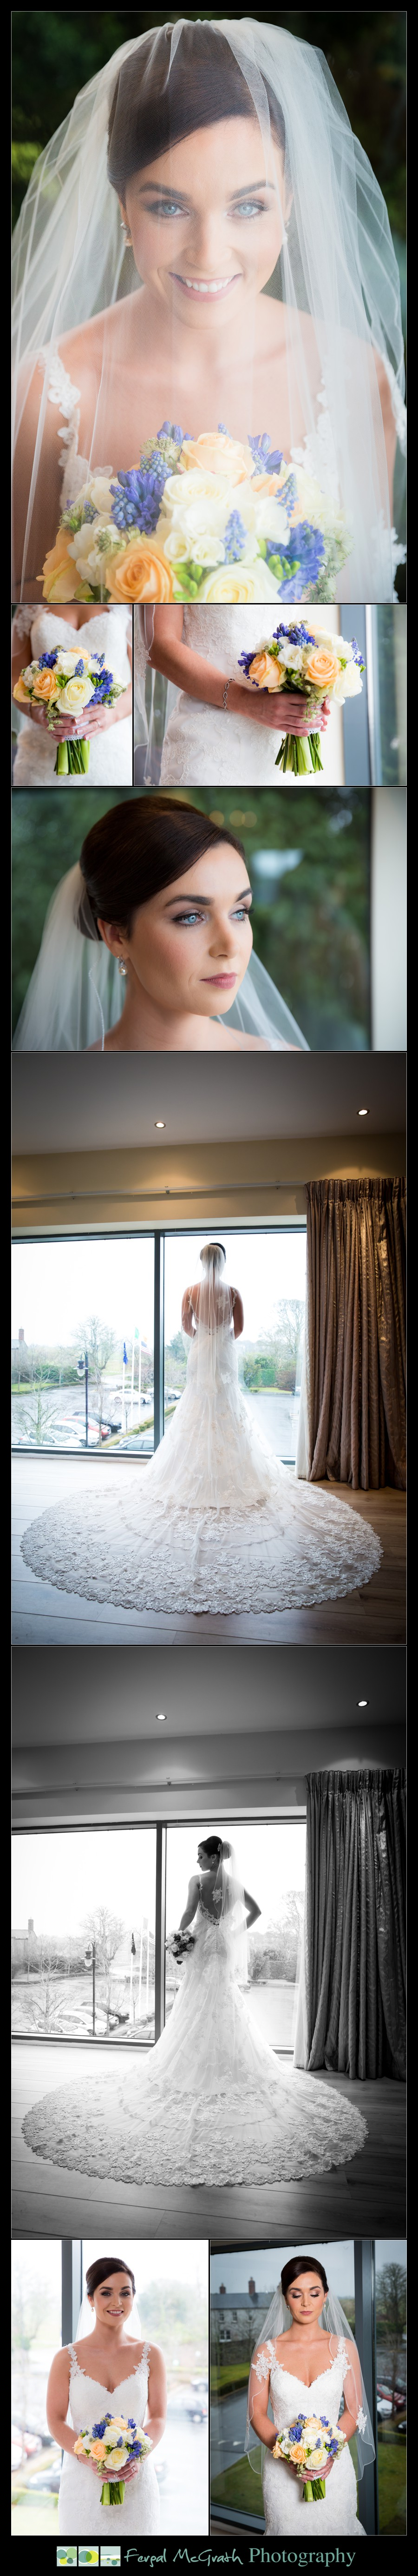 Castle Dargan Hotel Wedding Jamie and Andrew beautiful bride and her wedding dress